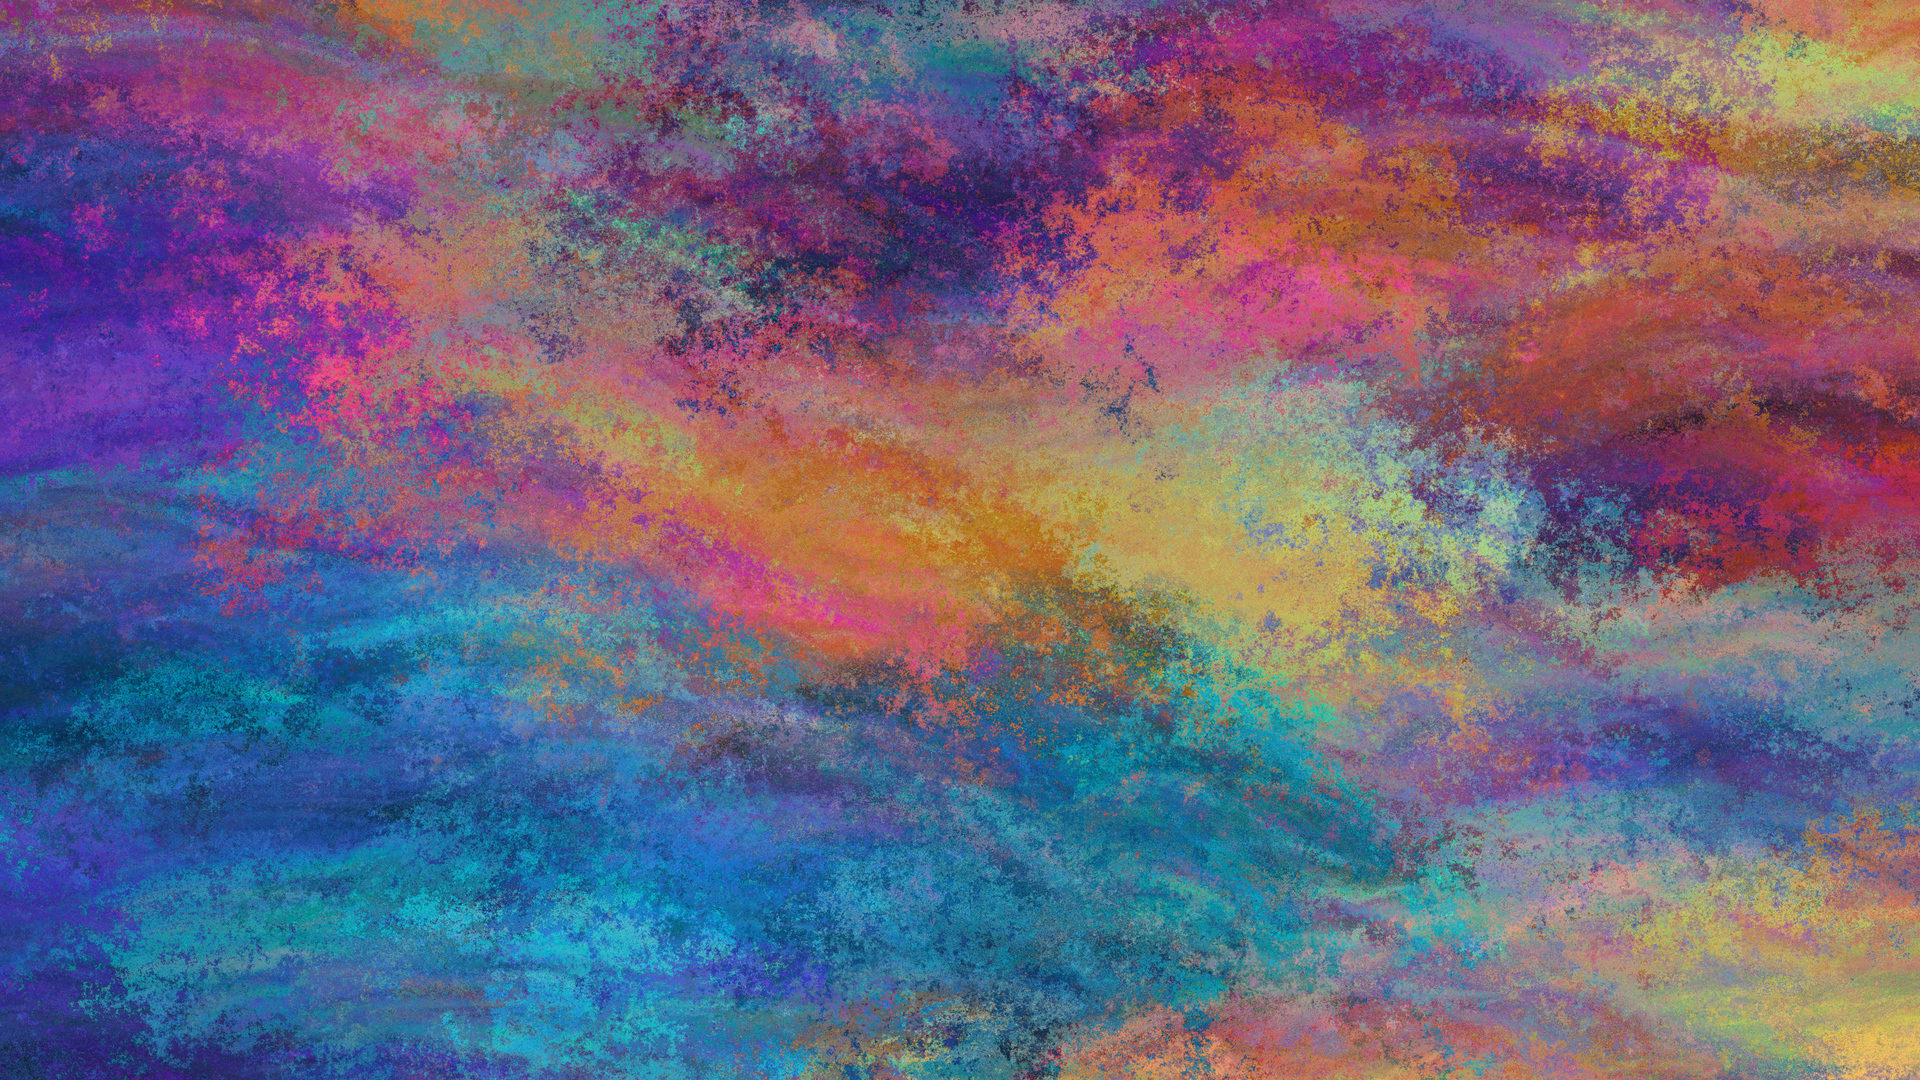 1920x1080 Painting Colorful Abstract 4k Laptop Full HD ...